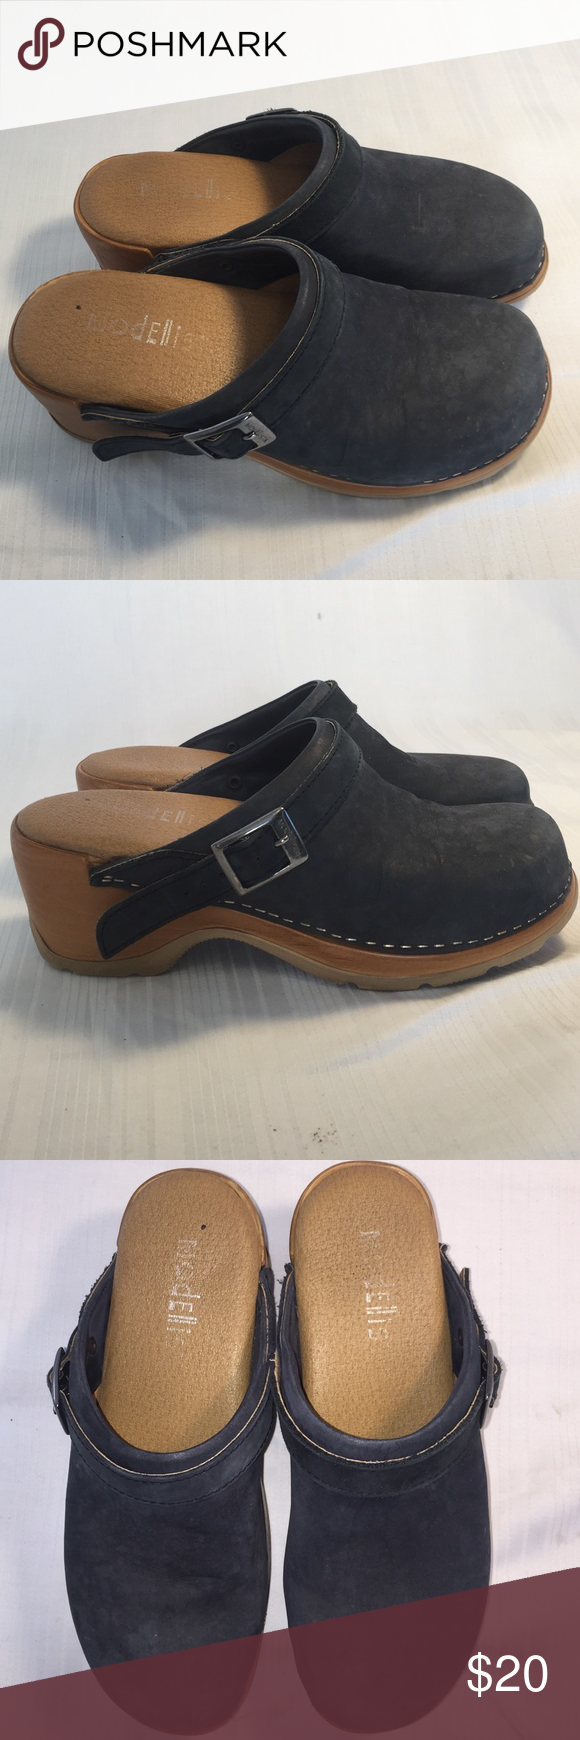 26f37433839b Modellista clogs Blue suede clogs strap can be decorative or fastened  behind ankle super comfy modellista